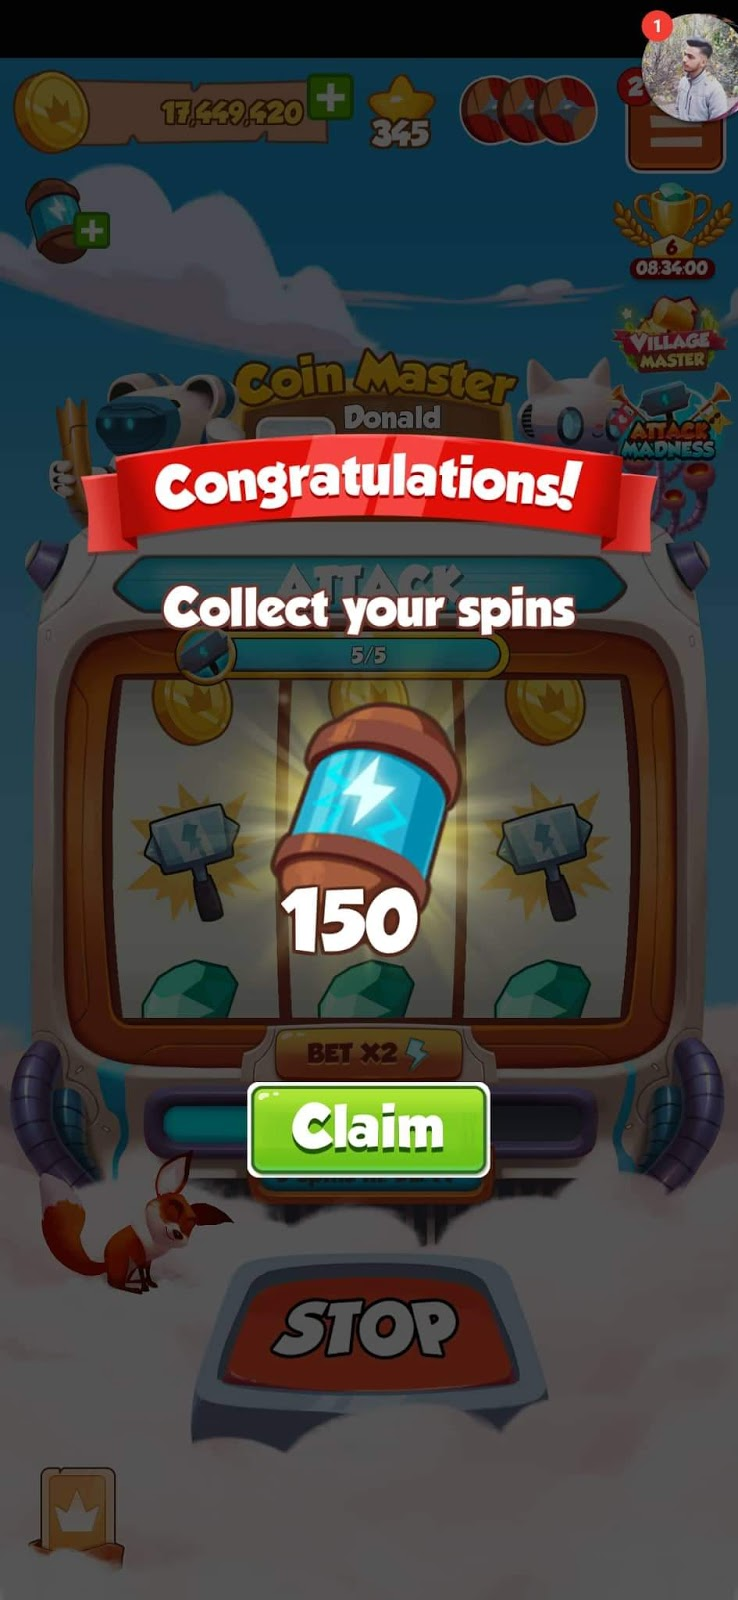 Haktuts 2020 Coin Master Free Spin Link